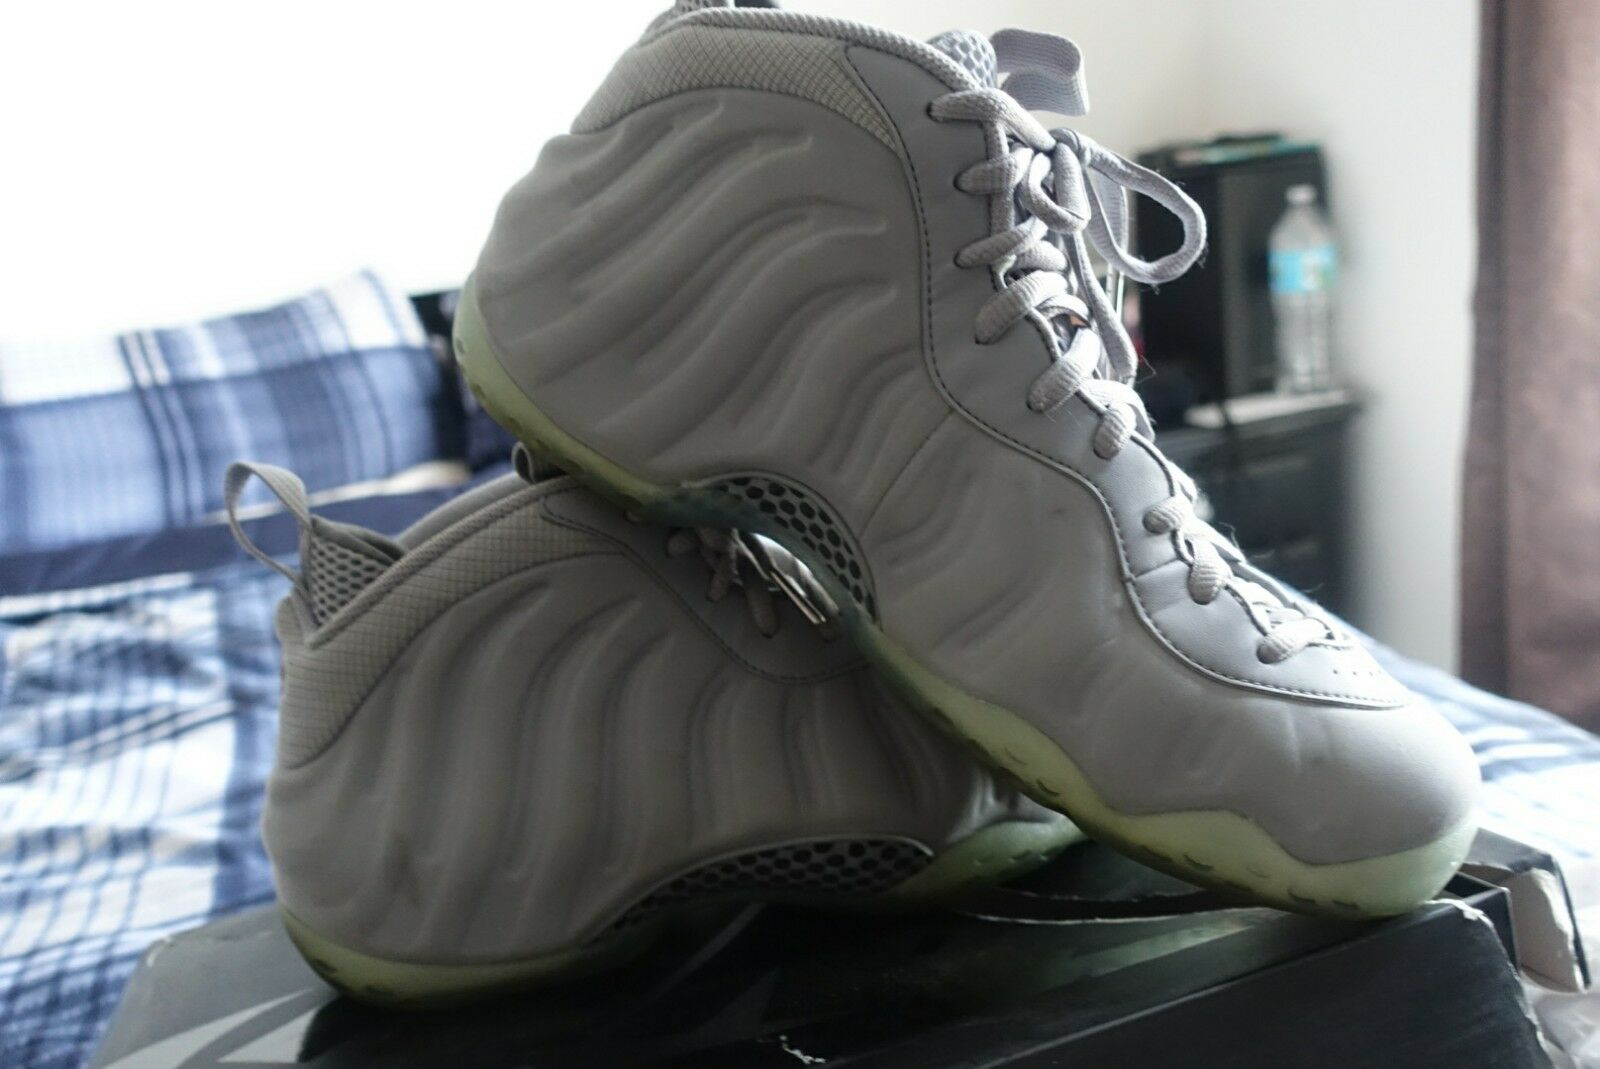 nike foamposite wolf grey  Cheap and fashionable